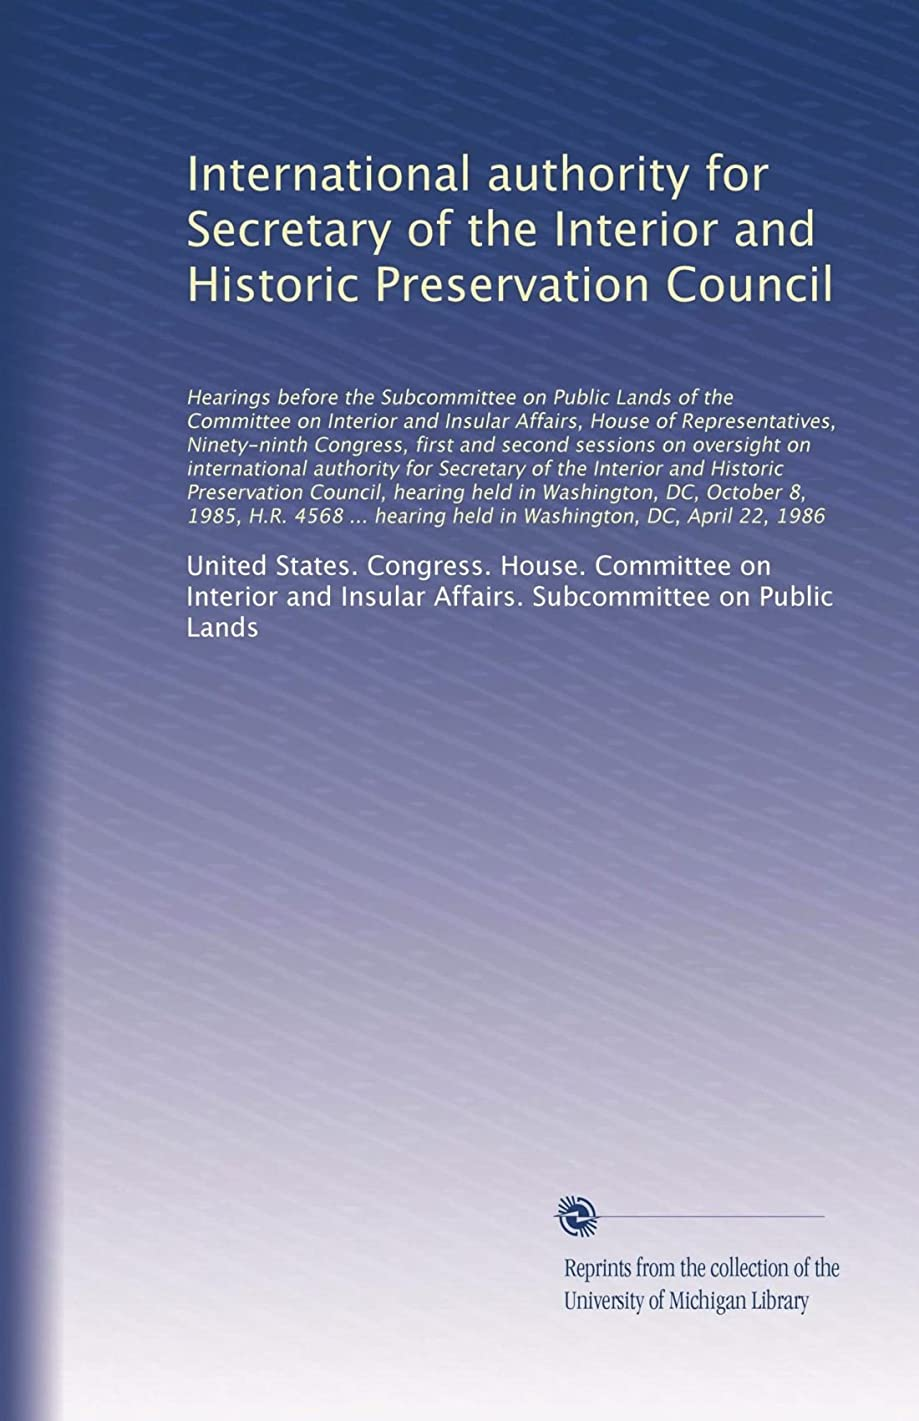 International authority for Secretary of the Interior and Historic Preservation Council: Hearings before the Subcommittee on Public Lands of the Committee on Interior a...